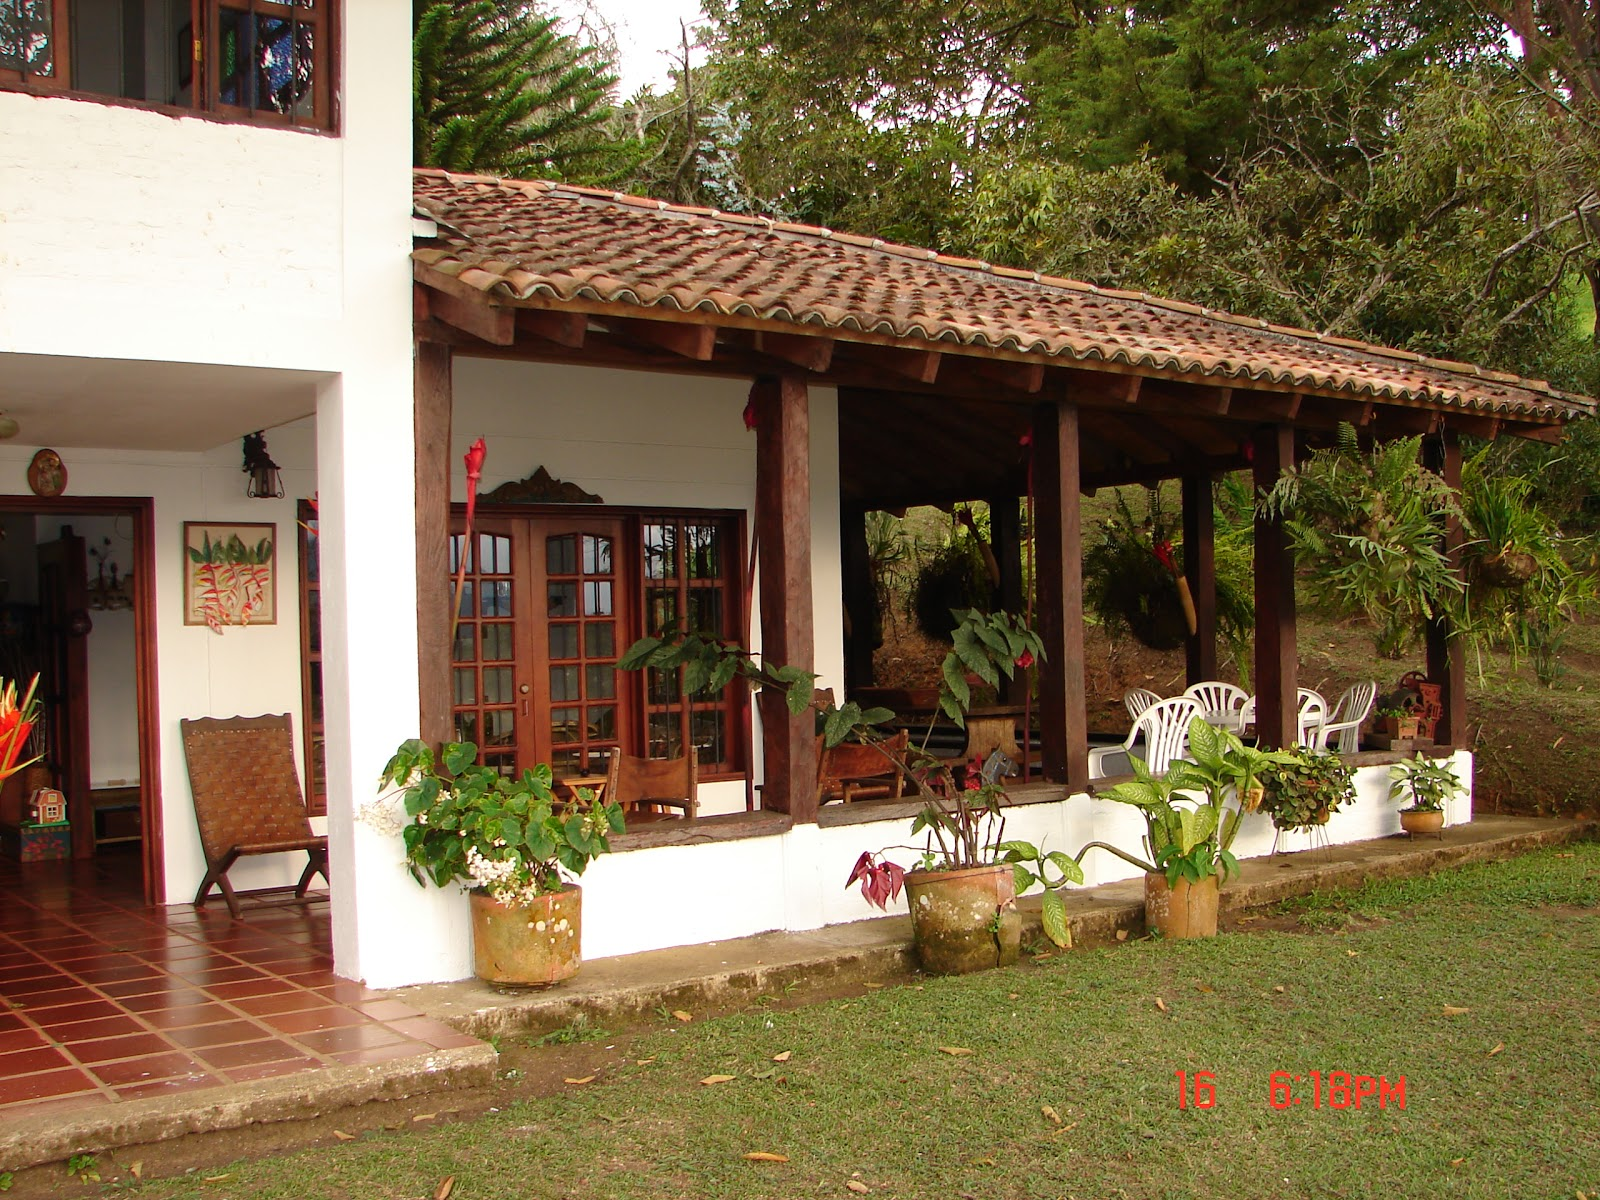 1000 images about house project on pinterest caribbean for Fotos de casas de campo rusticas